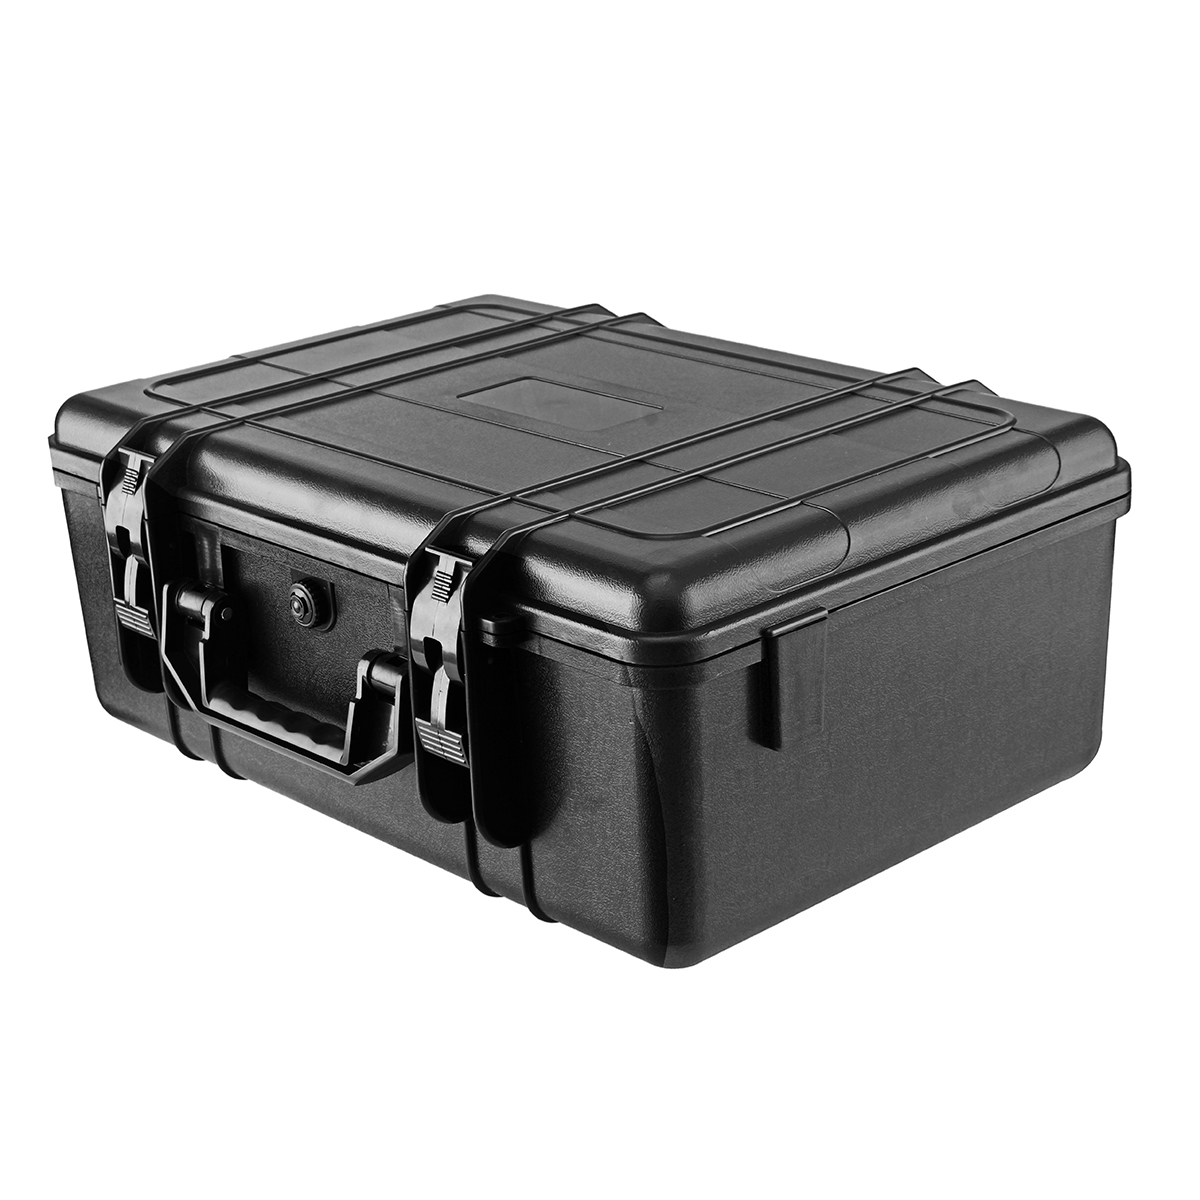 017fec60236 waterproof hard shell carry case bag plastic equipment protective ...